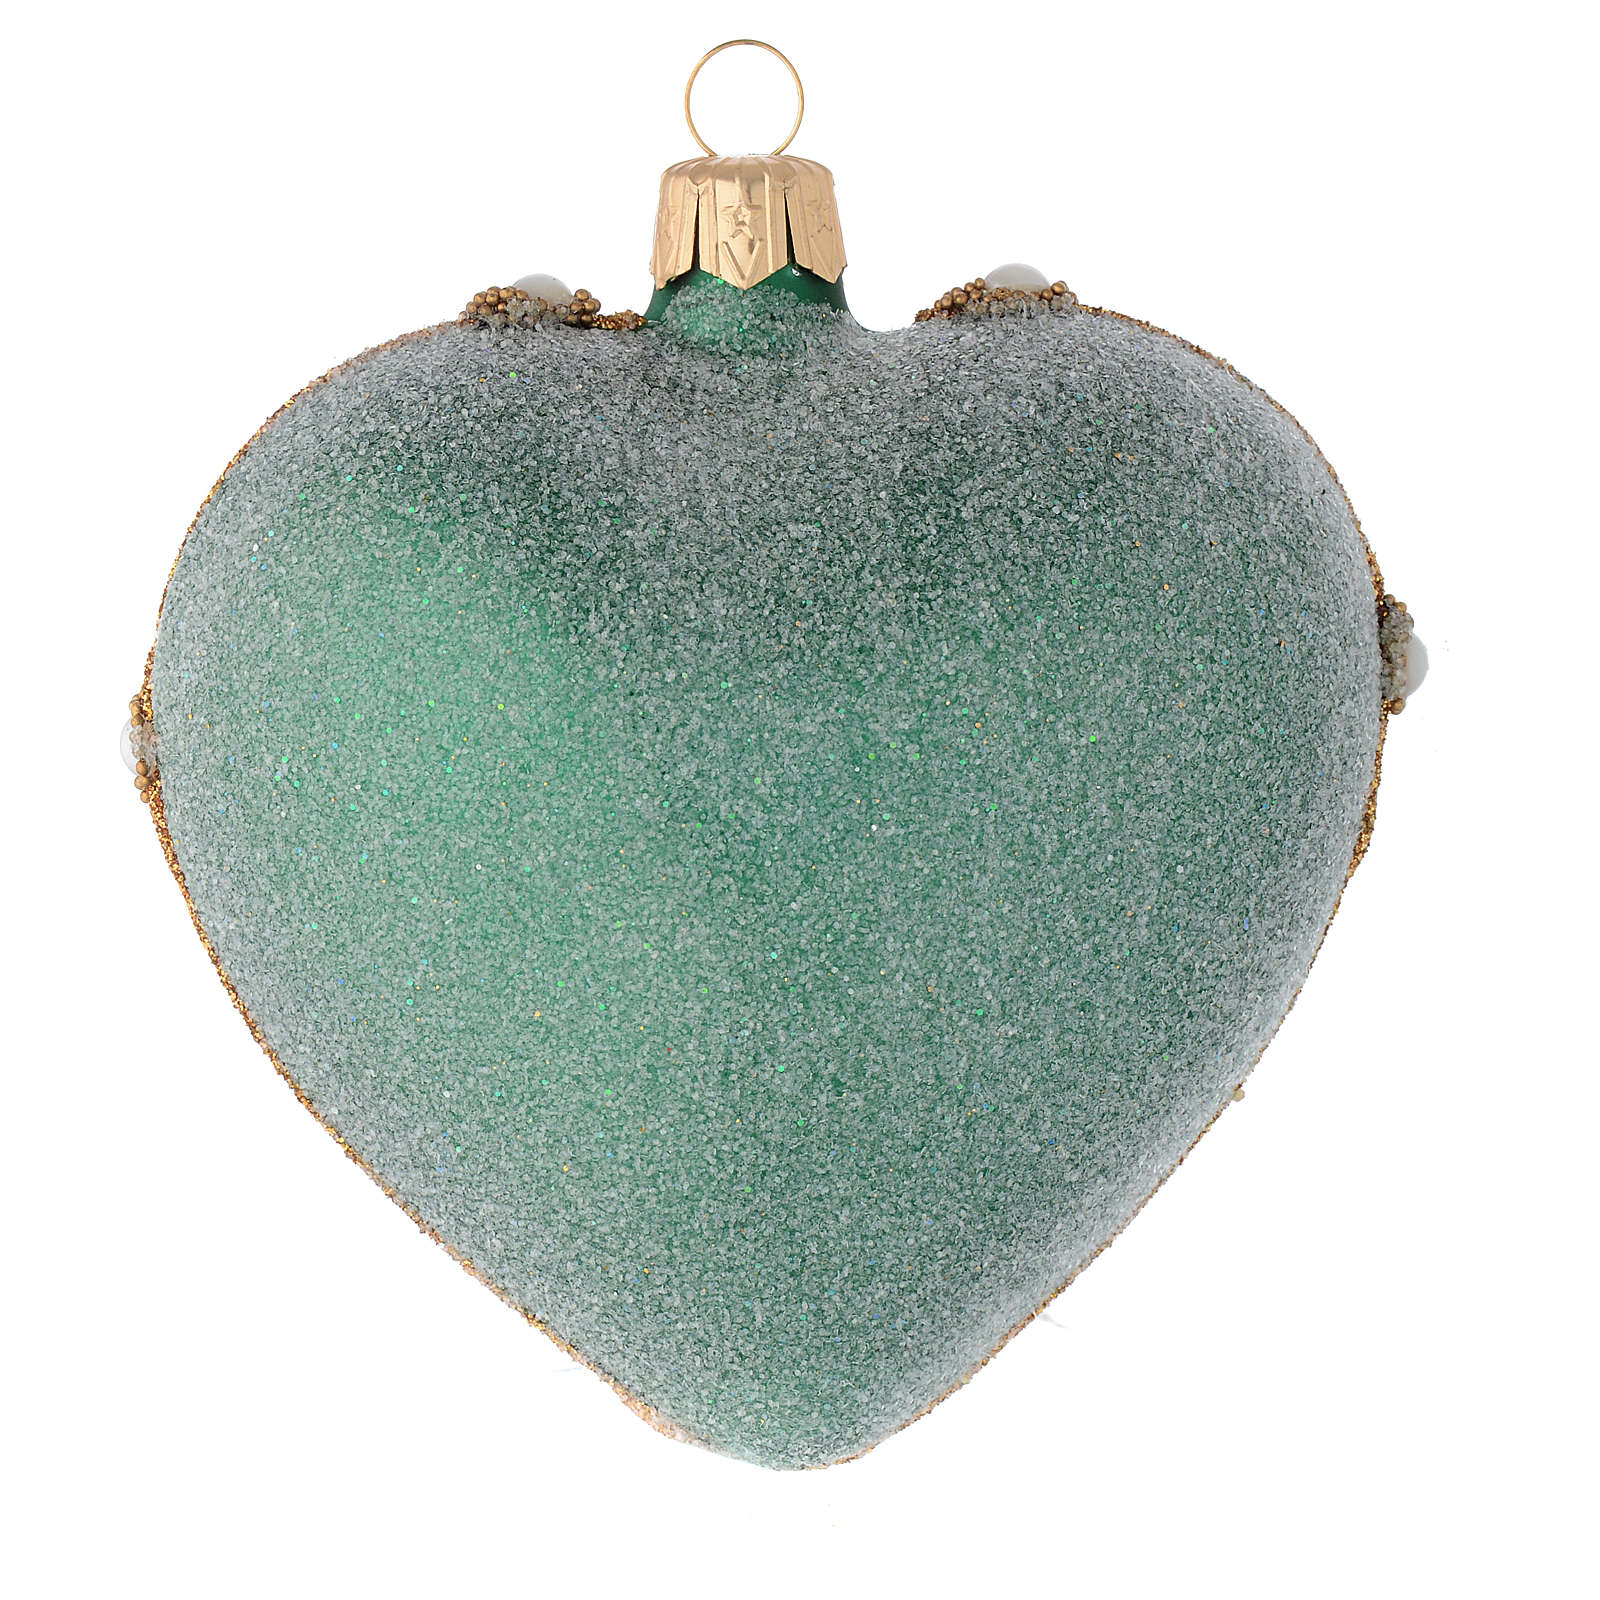 Heart Shaped Christmas bauble in green blown glass with gold decorations 100mm 4